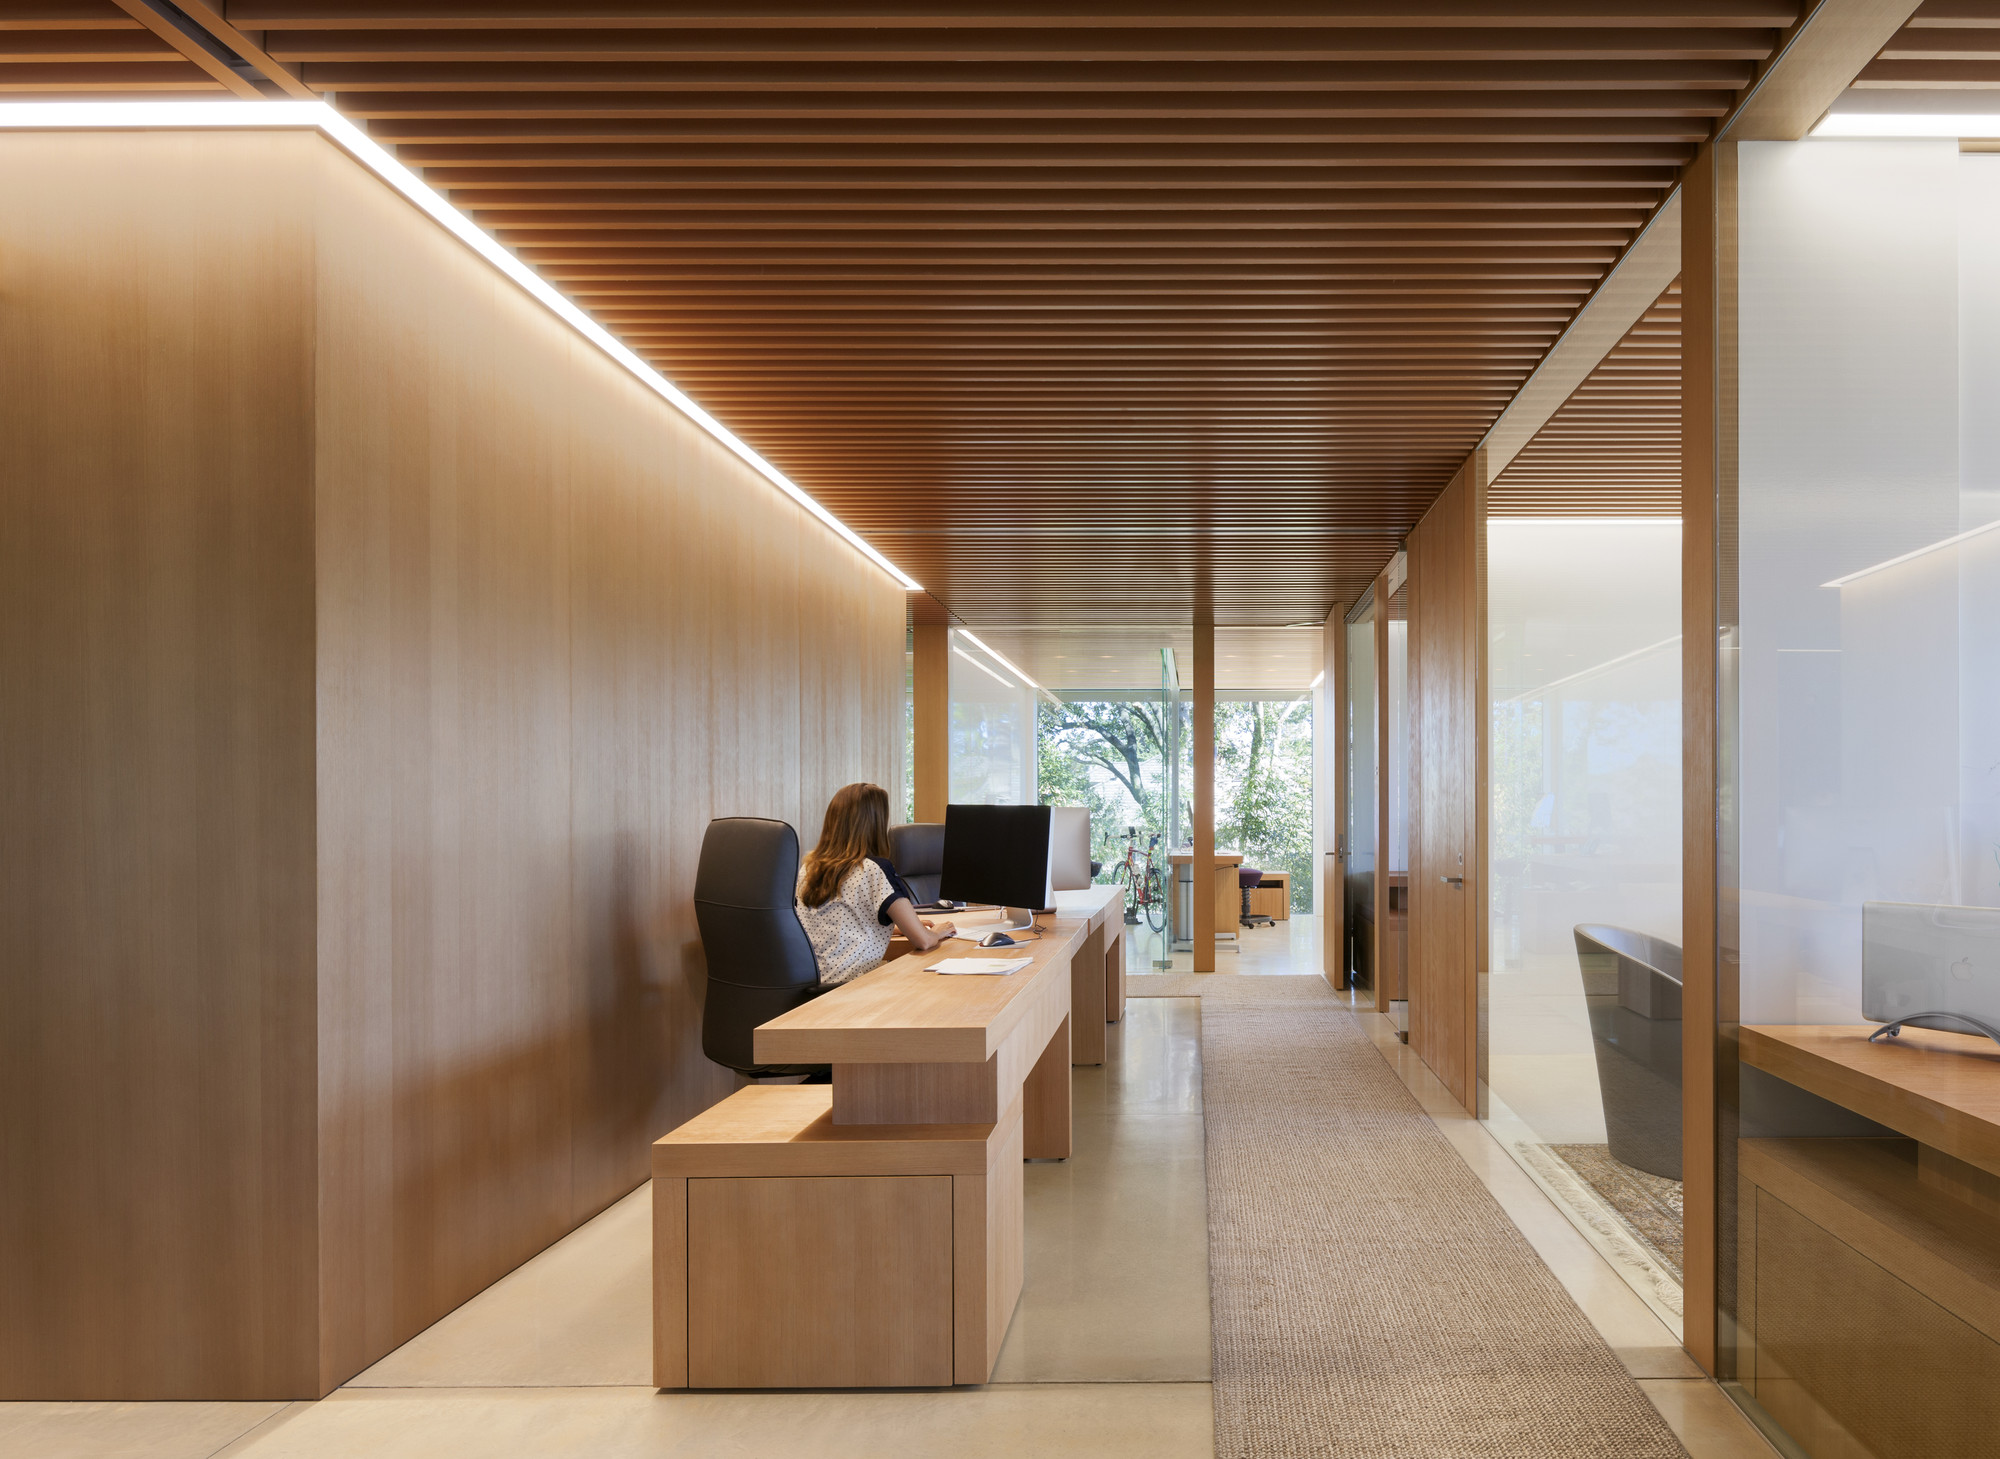 2015 wood design award winners announced archdaily